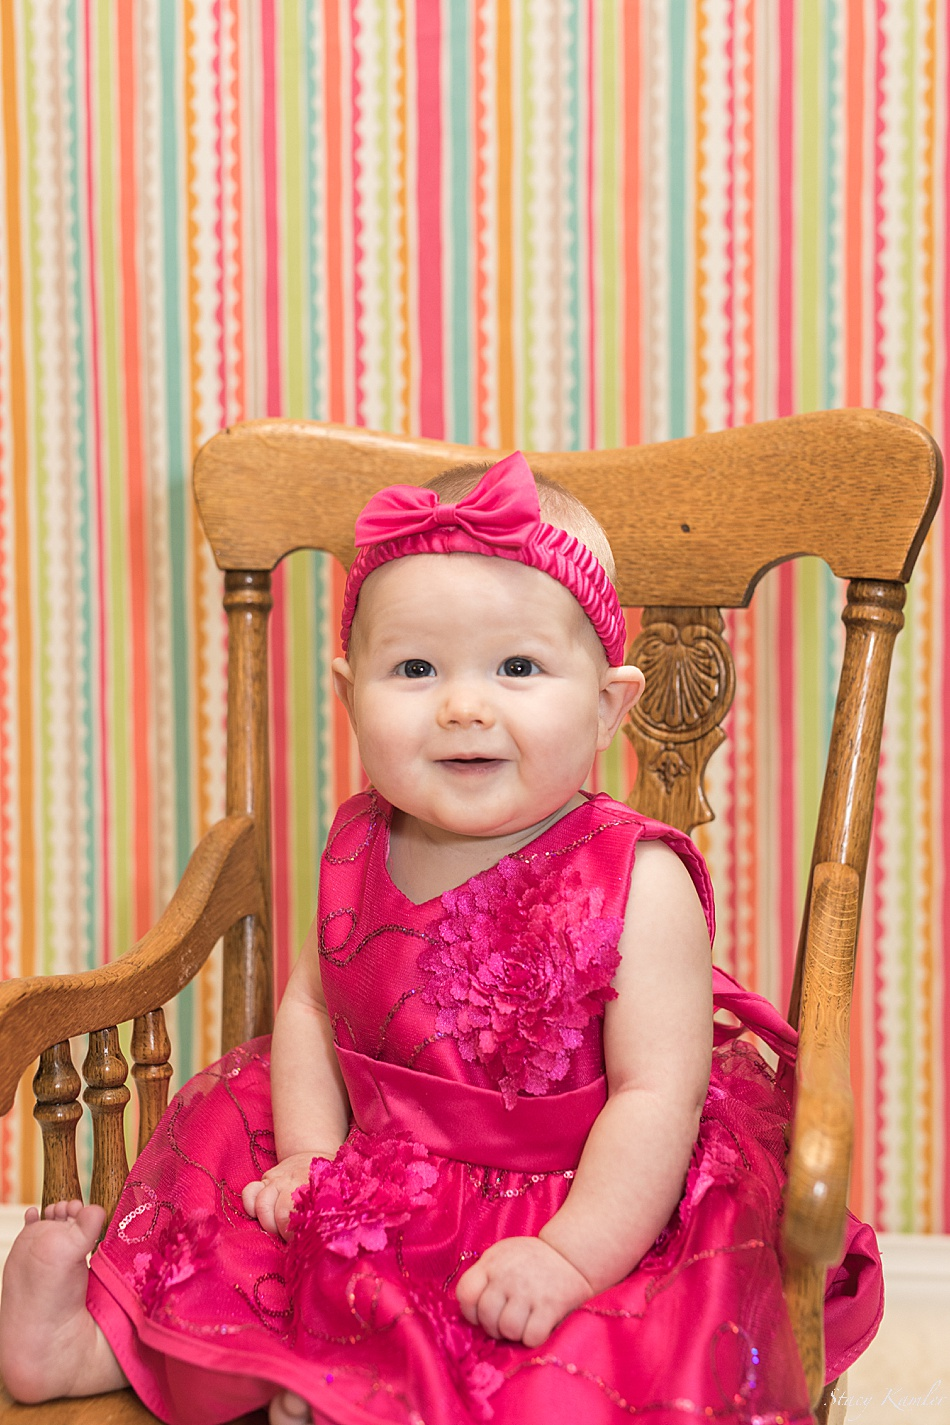 6 month girl in wooden chair